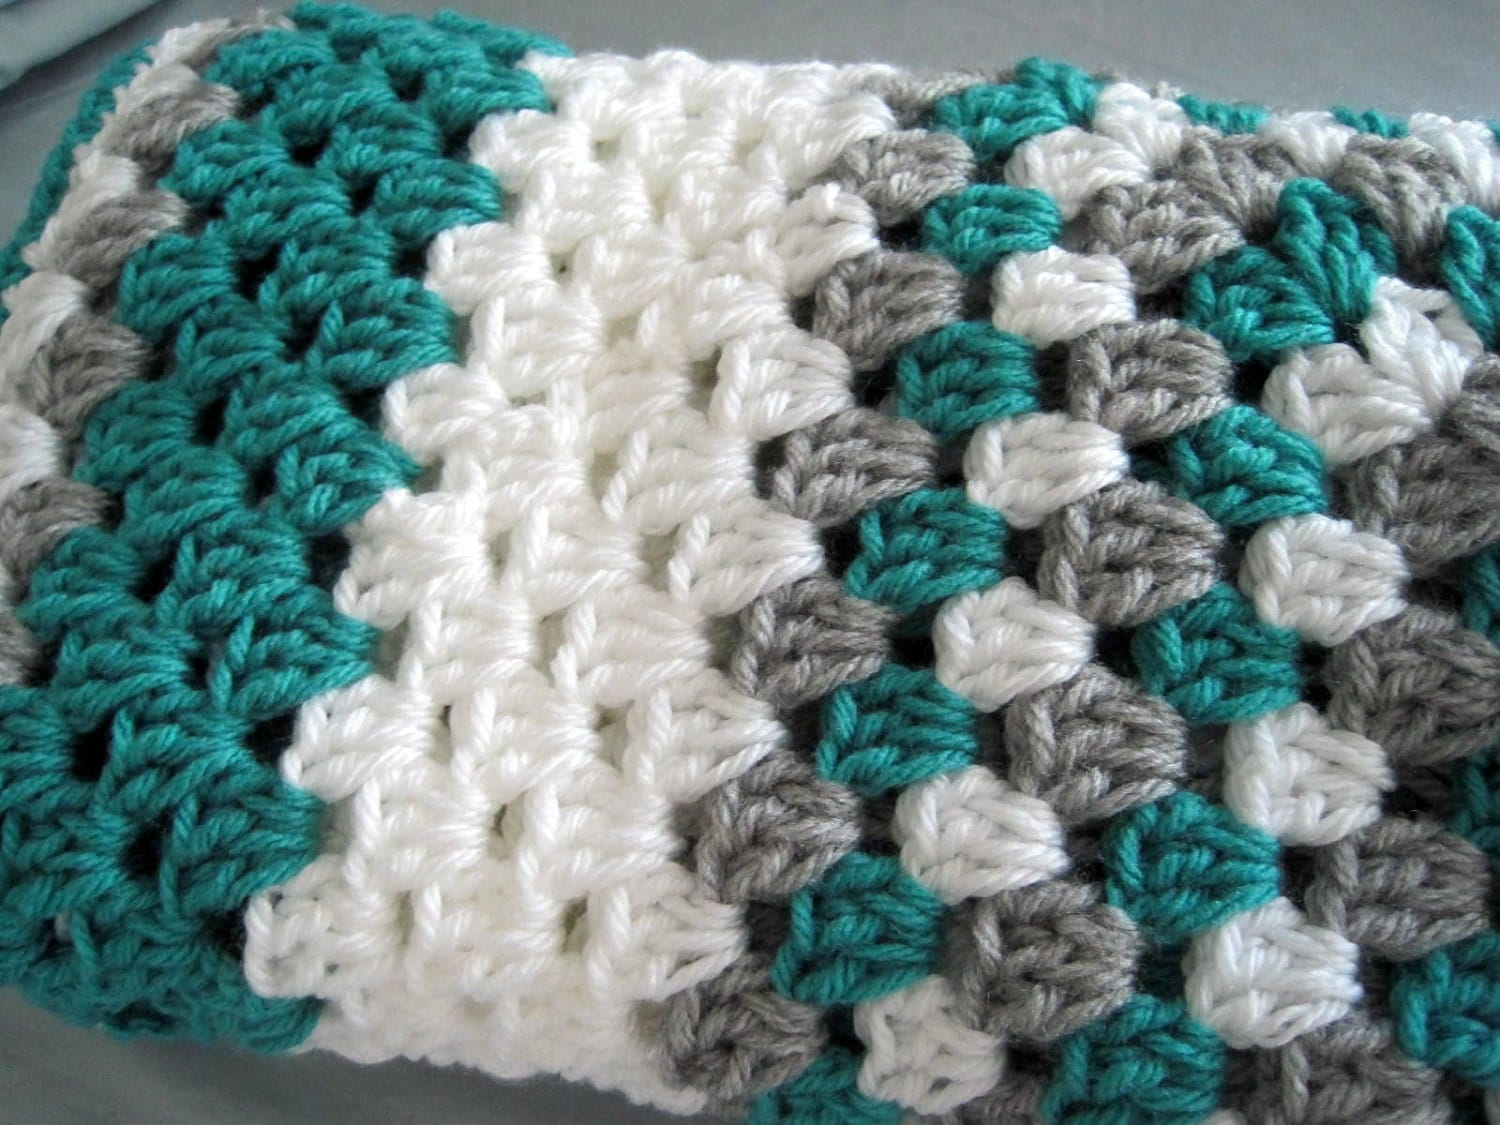 Crochet Patterns Granny Square Baby Blankets : Crochet baby blanket afghan granny square boys by ArrayOfCrochet